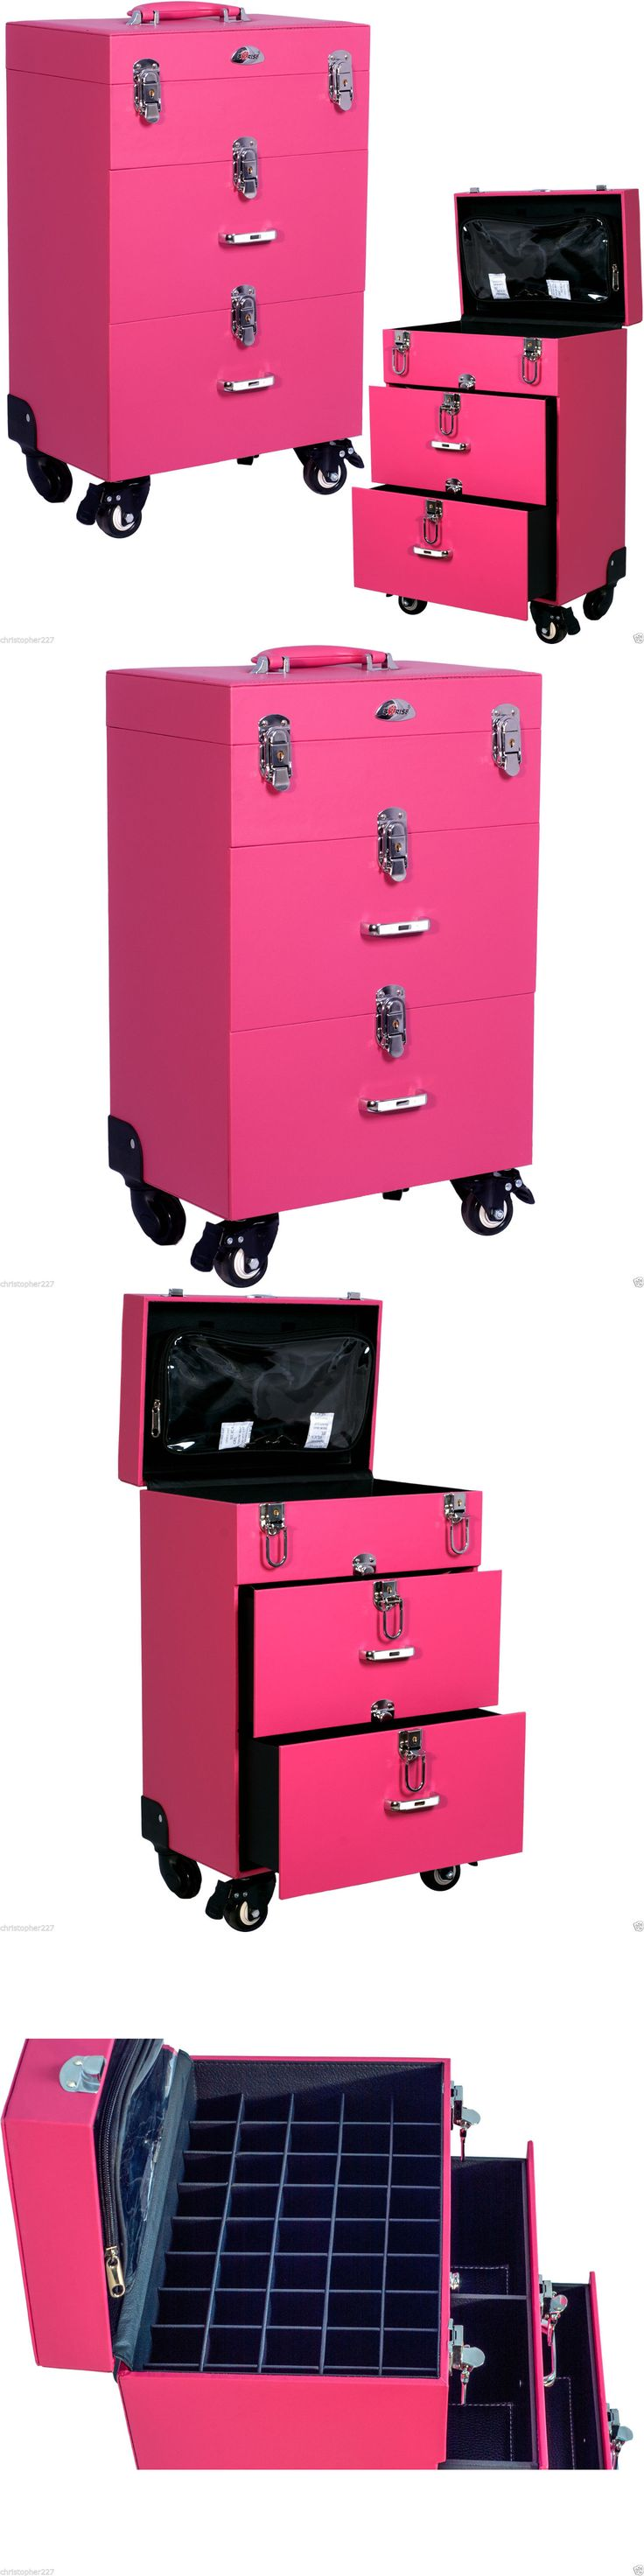 Nails: Professional Opi Nail Polish Manicure Makeup Trolley Case Box Organizers Storage -> BUY IT NOW ONLY: $199.99 on eBay!